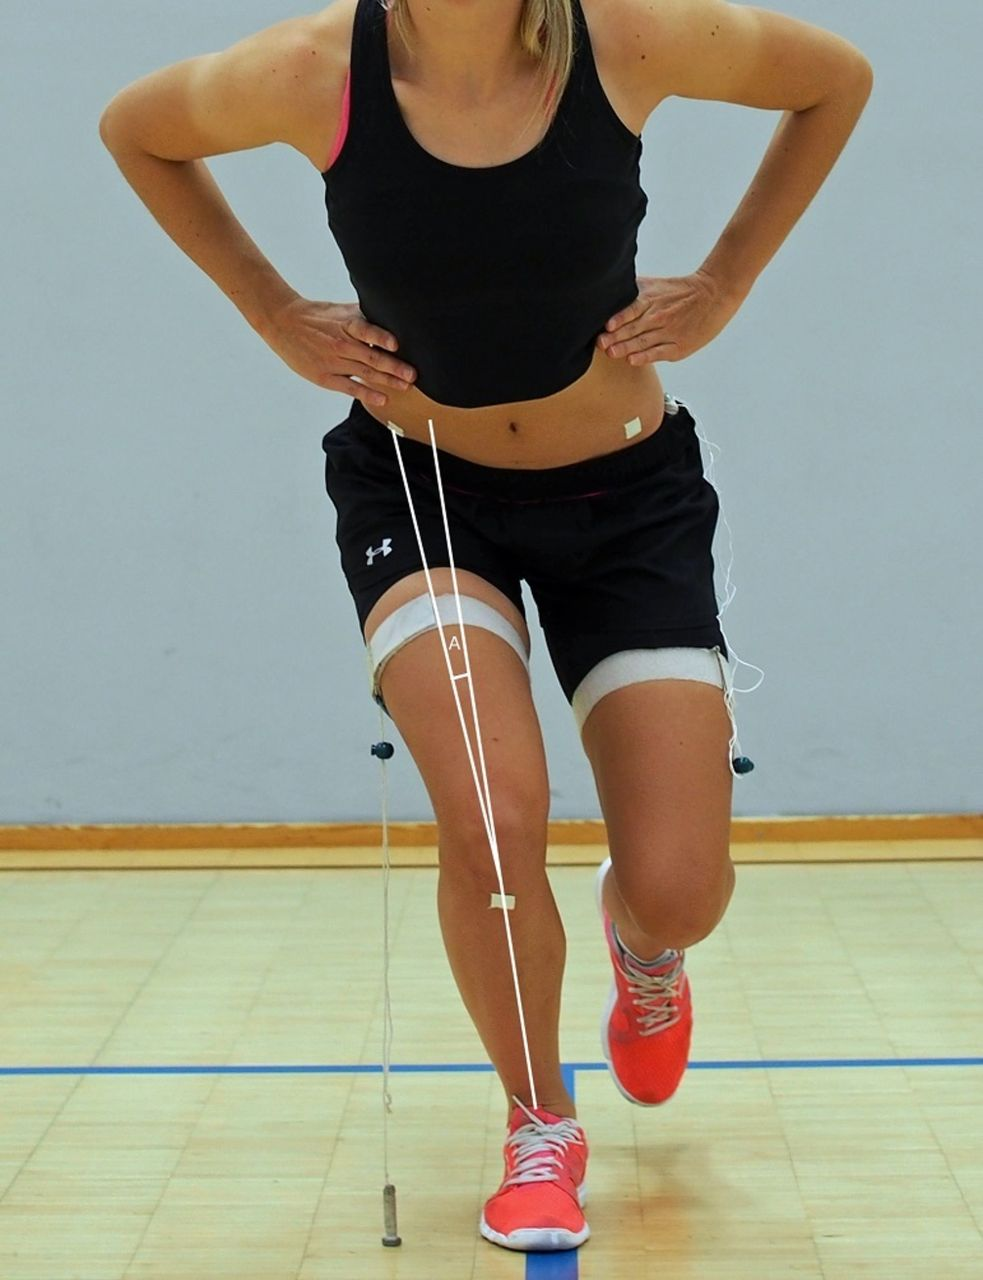 Association Between Frontal Plane Knee Control And Lower